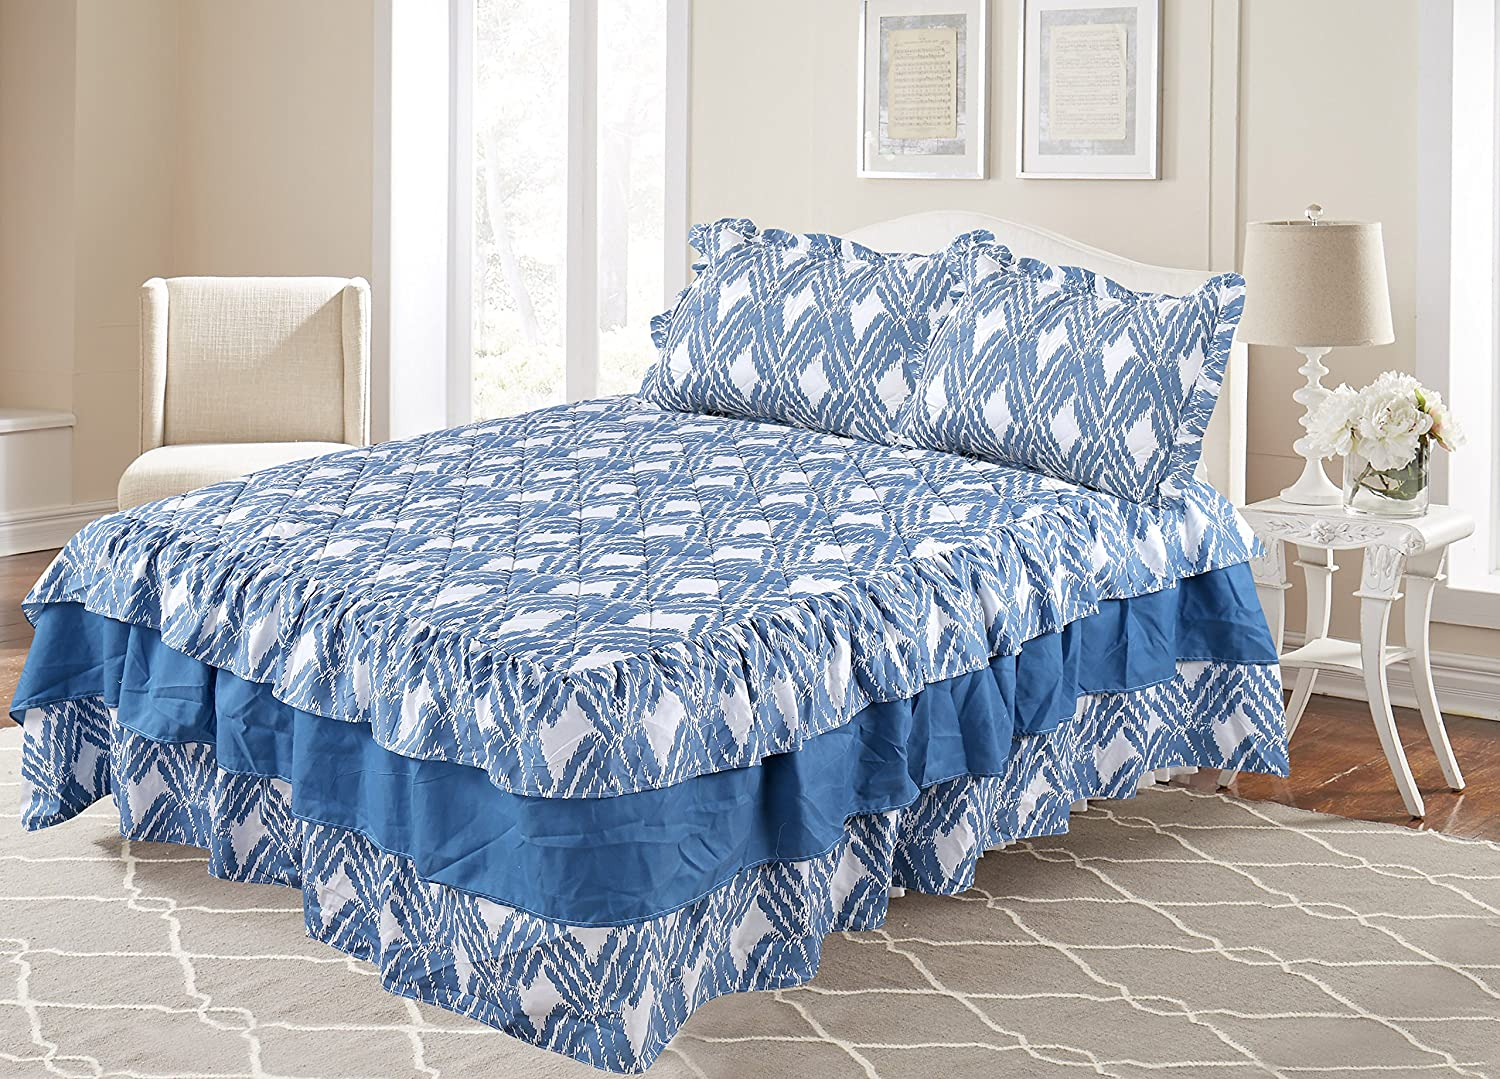 Deals On All American Collection Bedding Sets Ease